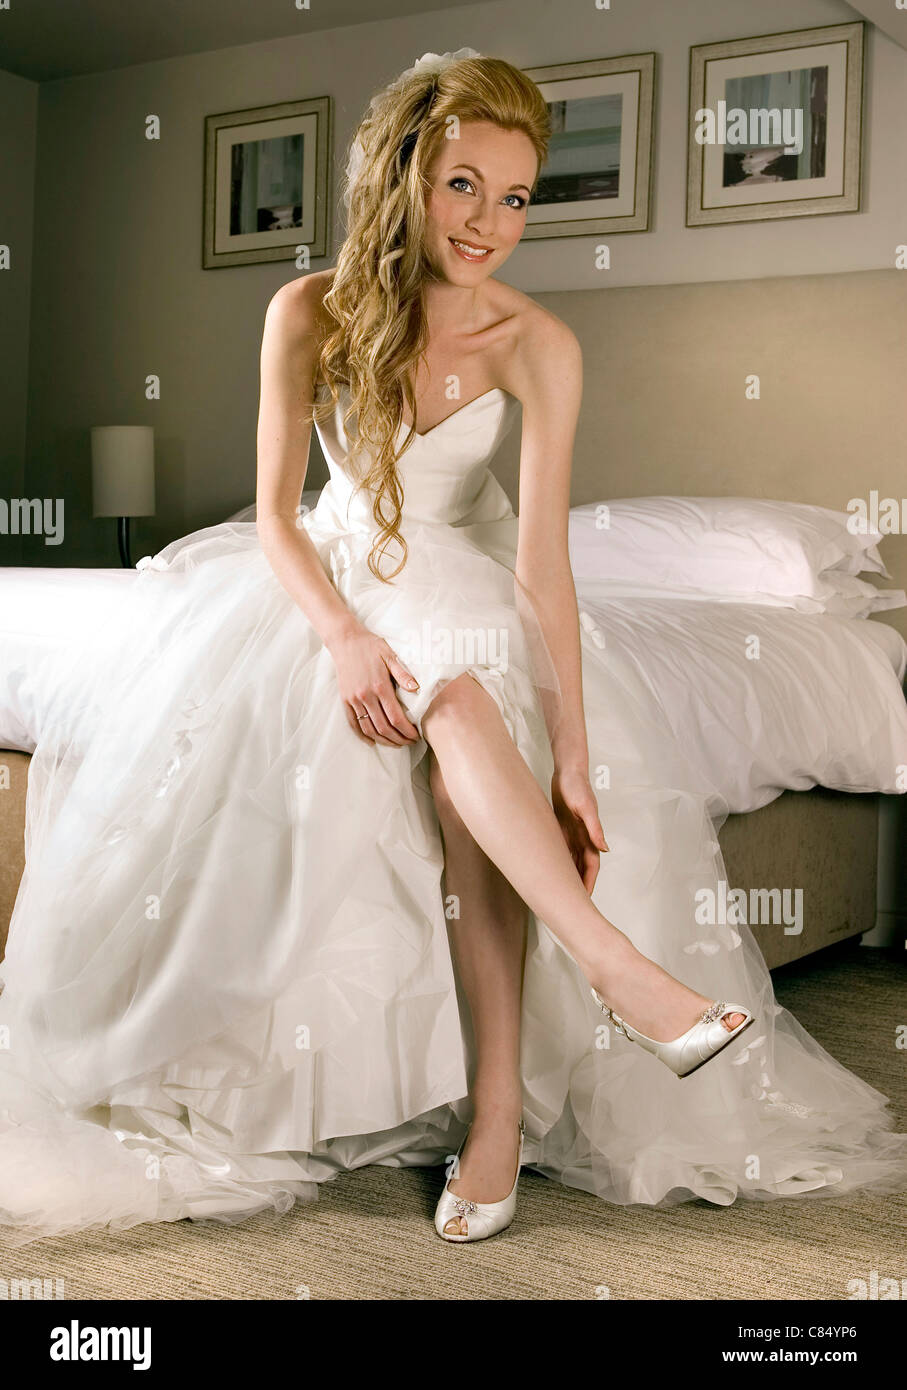 A Young Woman Posing As Bride In White Wedding Dress Putting On Pair Of Shoes Hotel Room